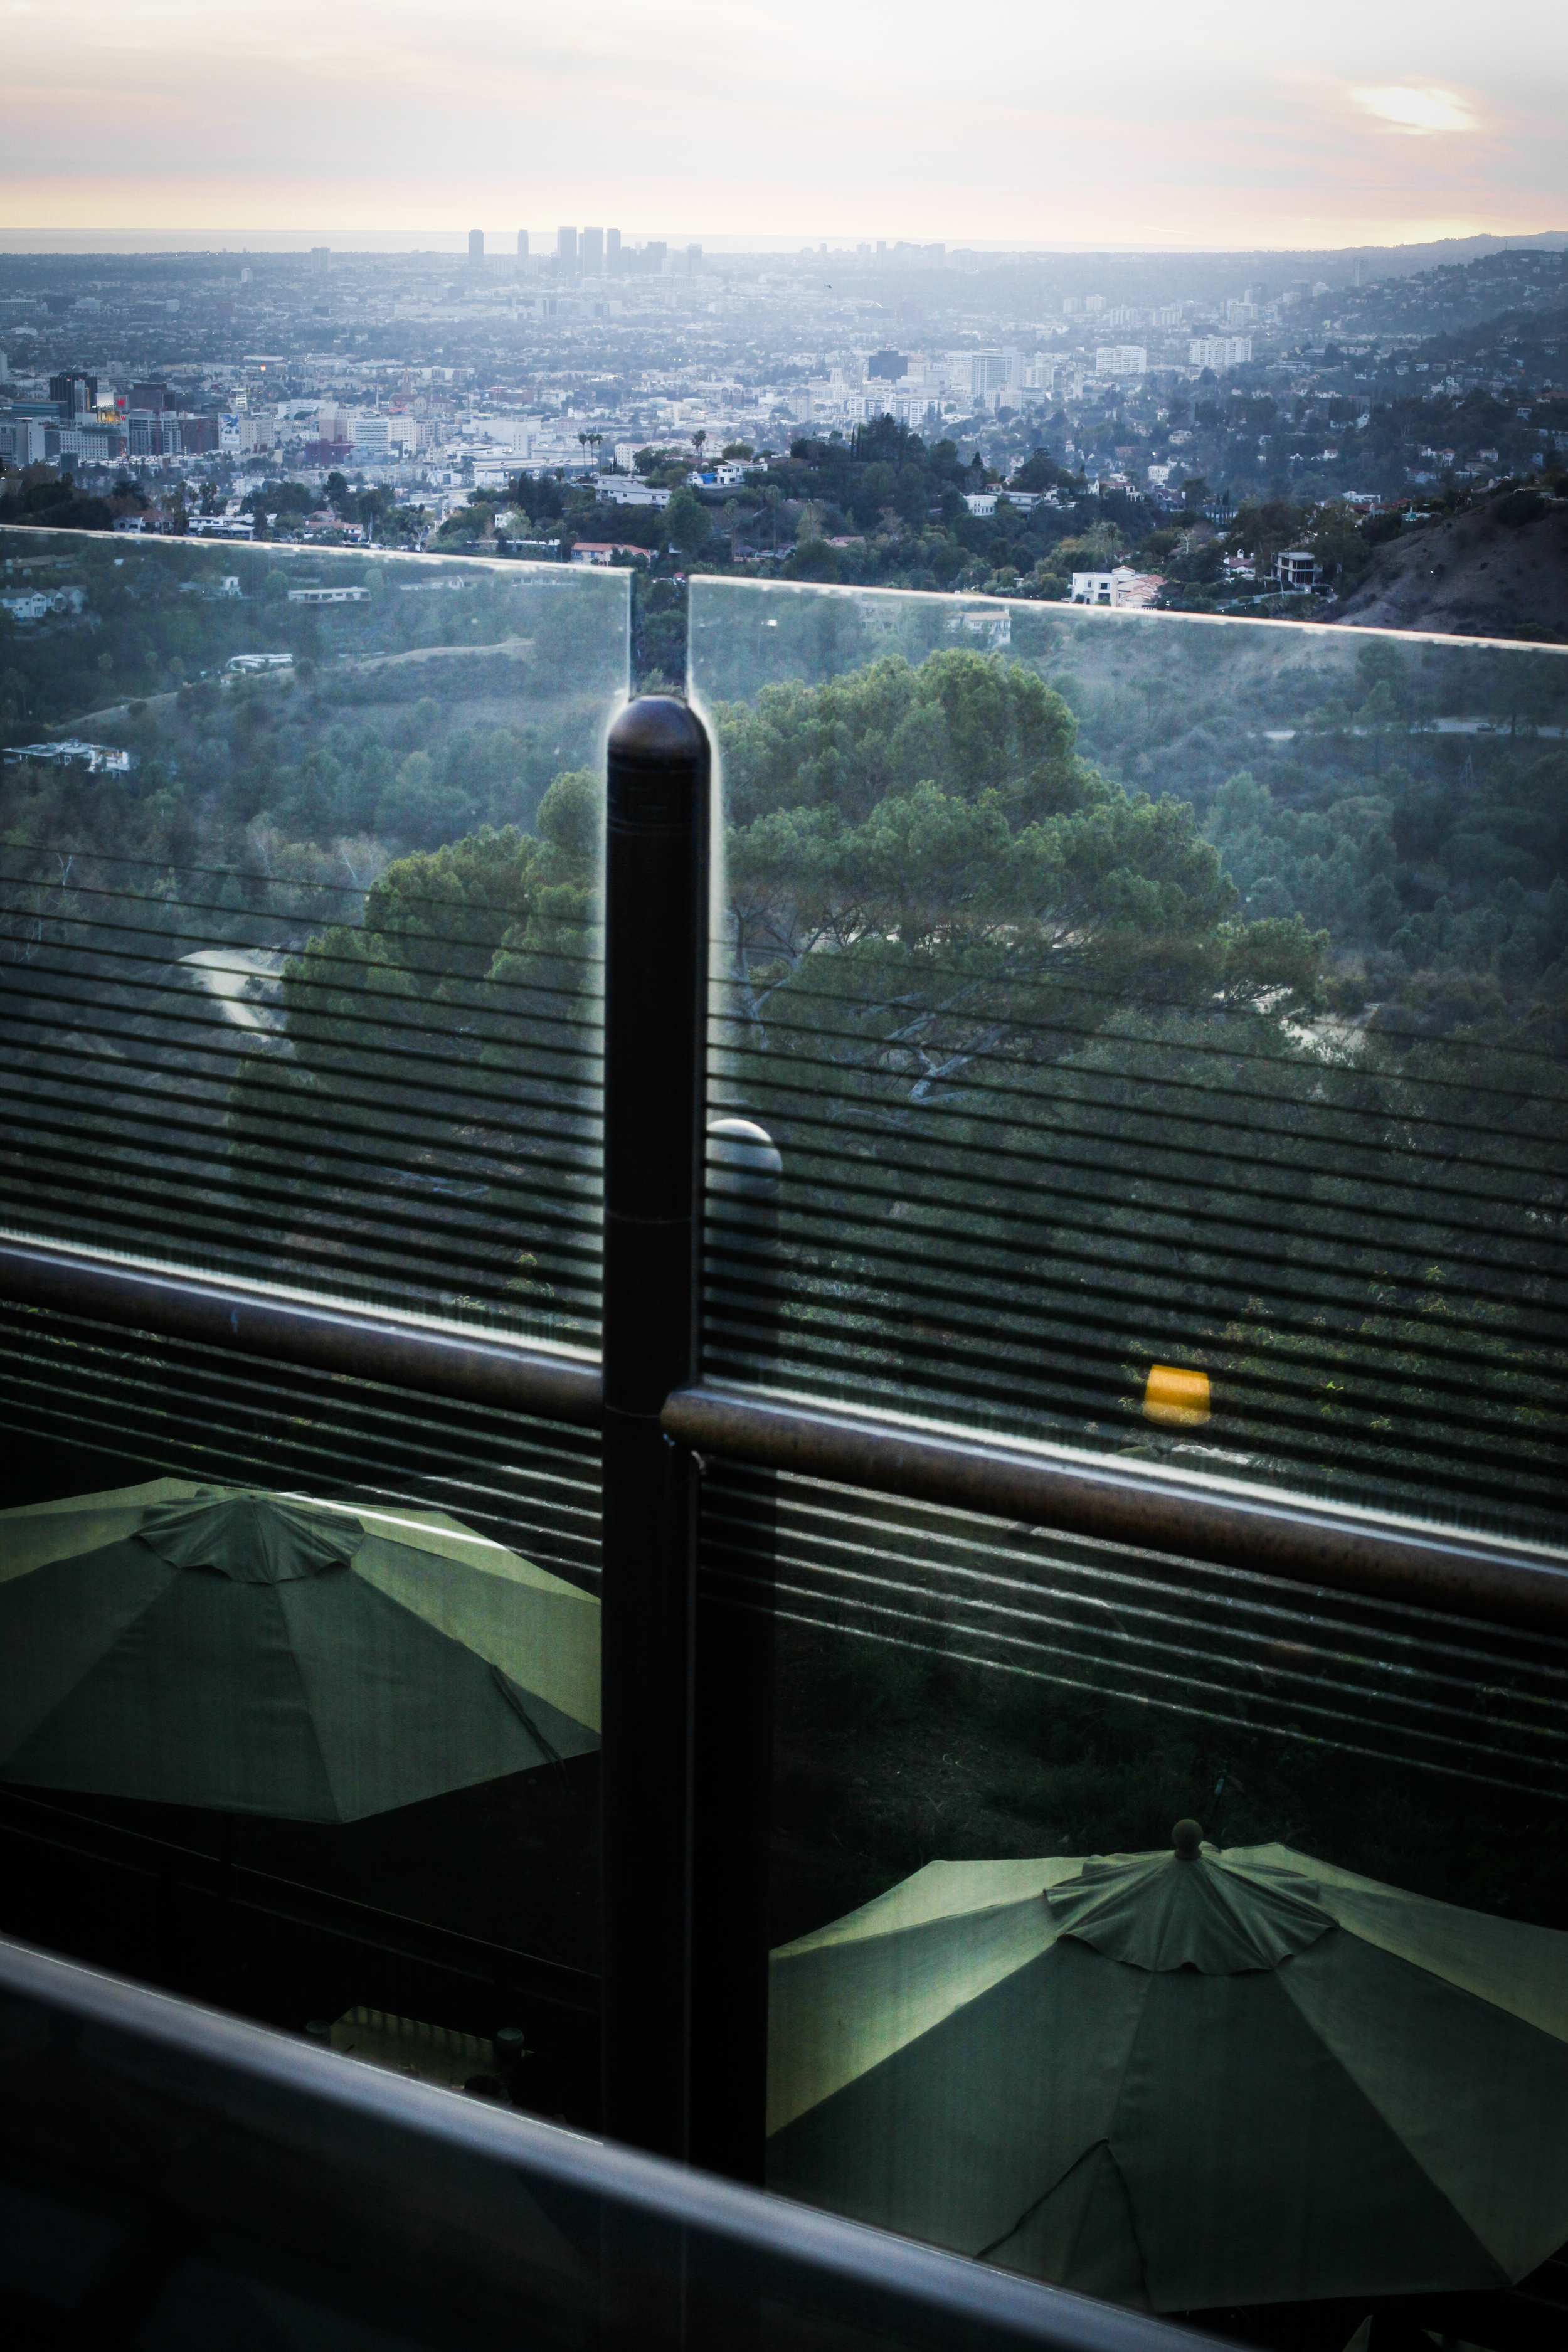 gRIFFITH oBSERVATORY_14 (1).jpg